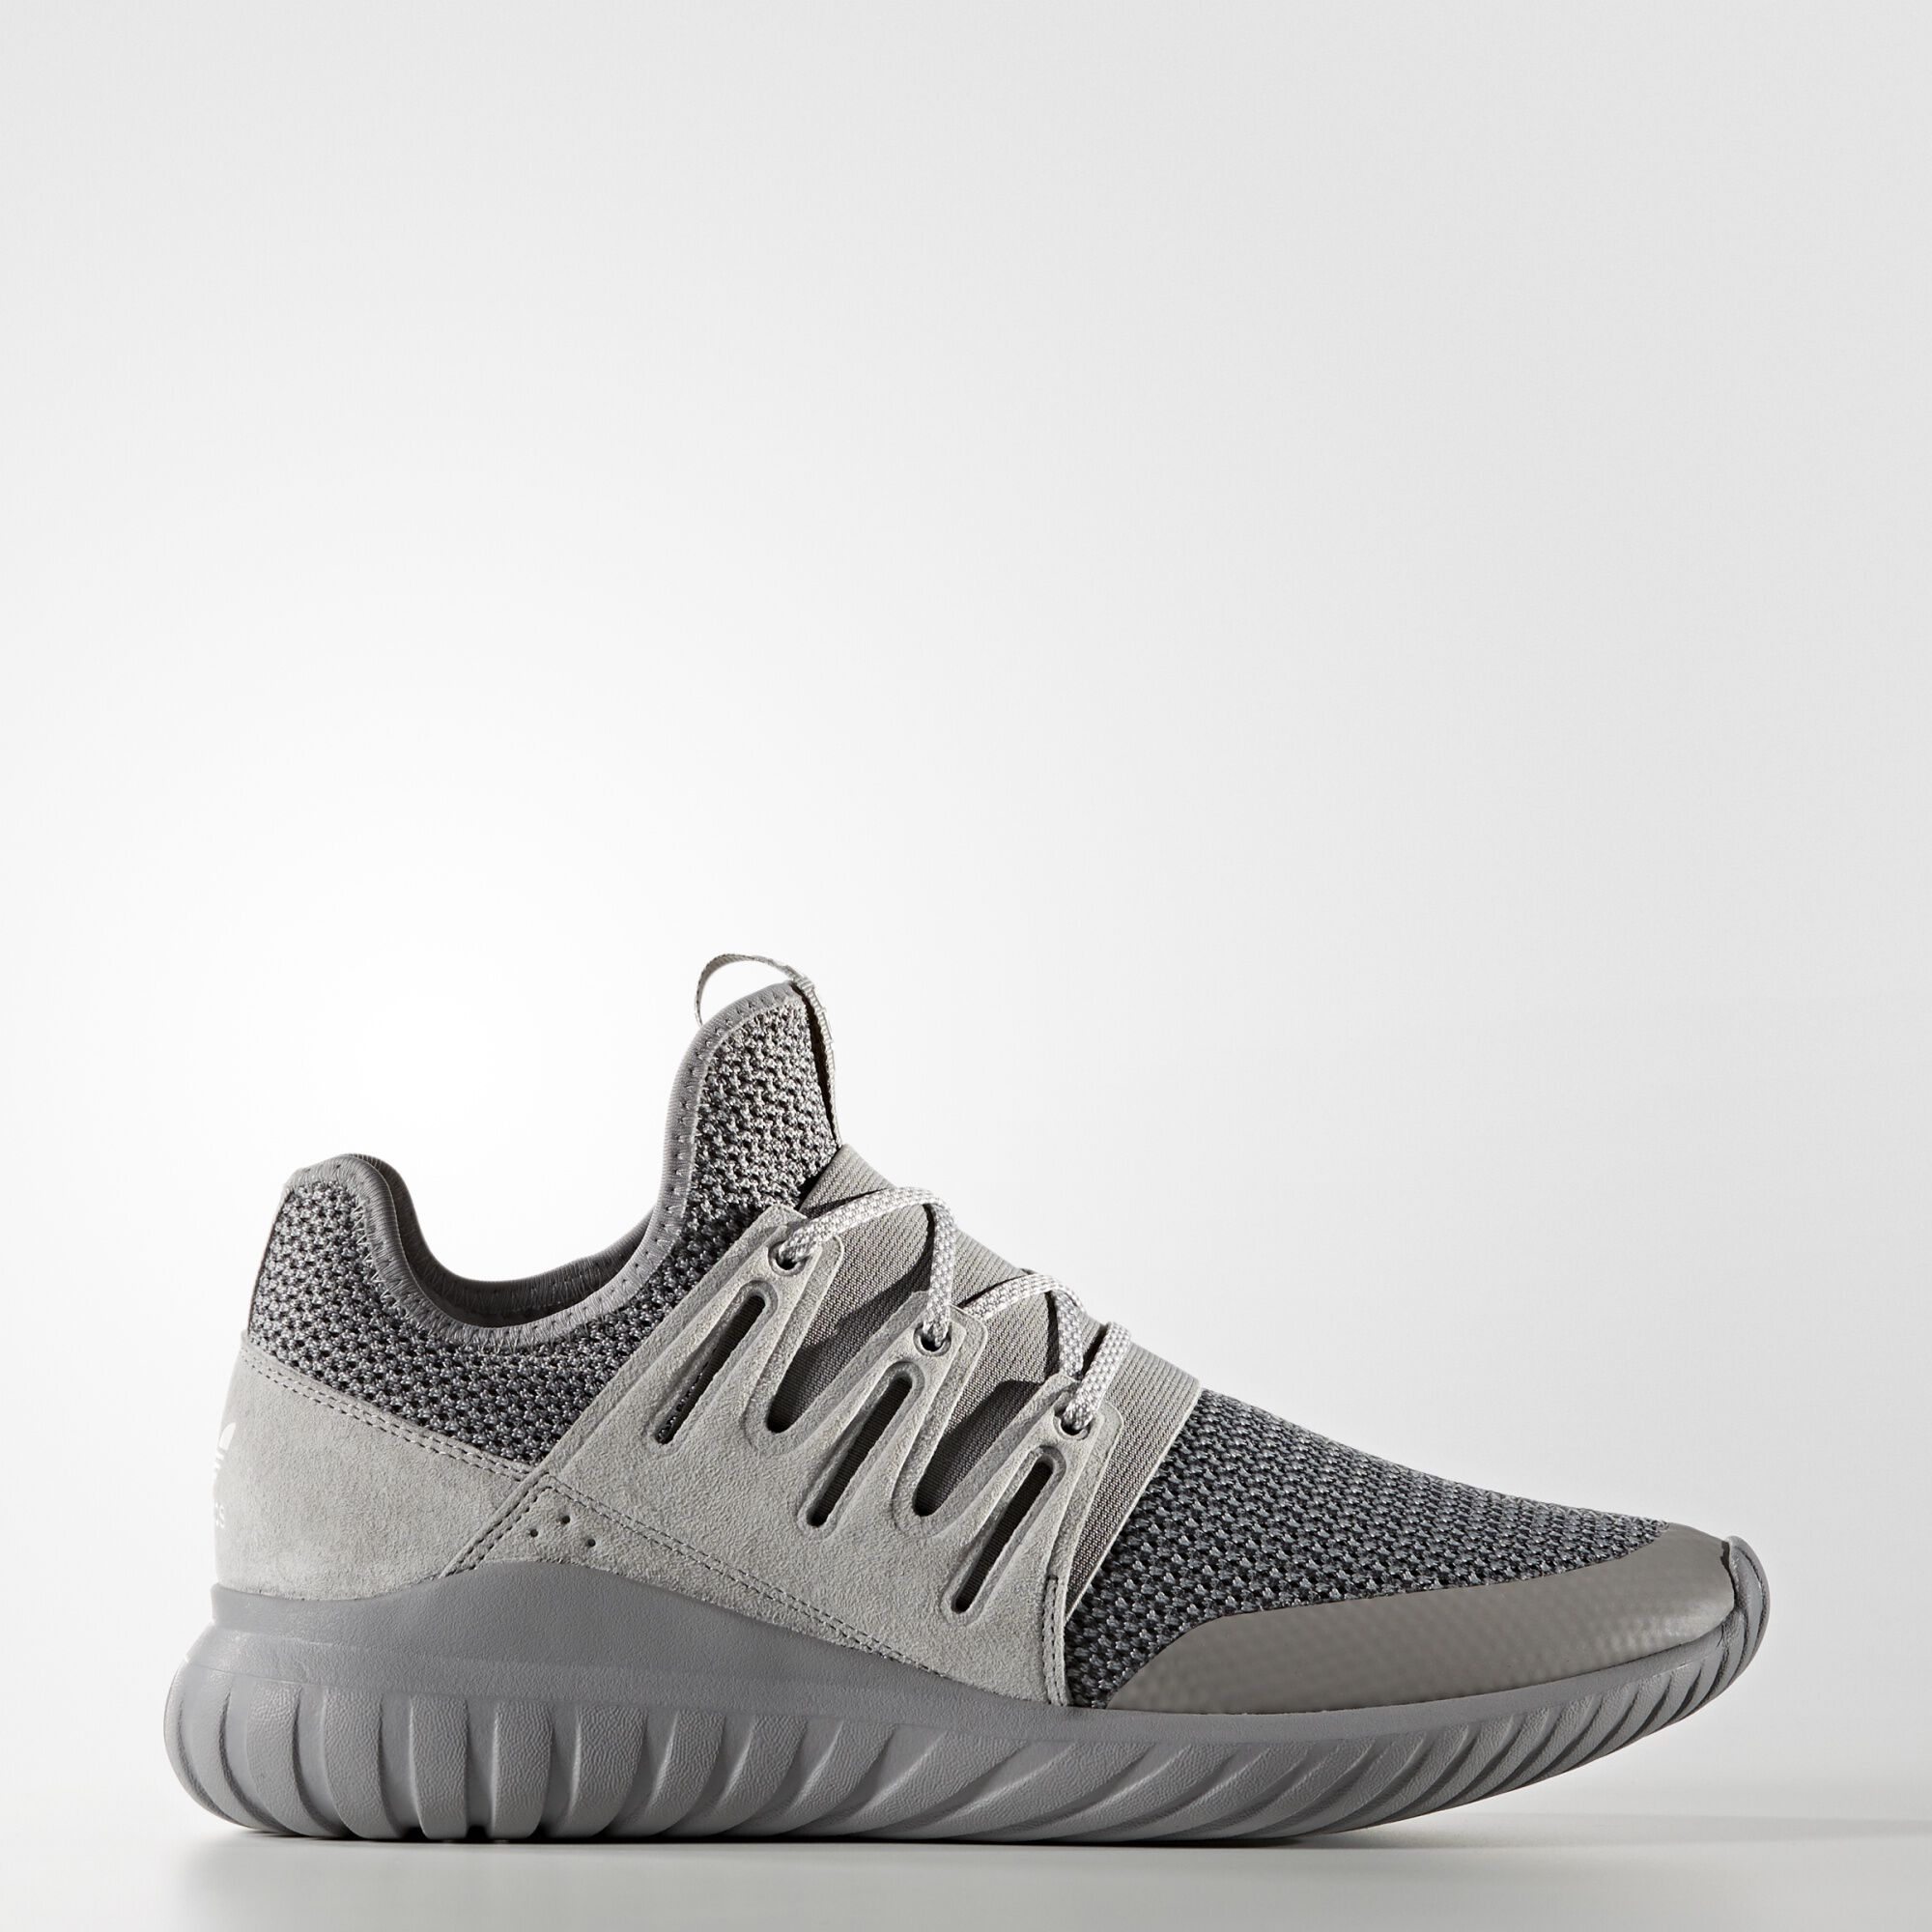 Adidas Tubular Radial Black & Burgundy Shoes